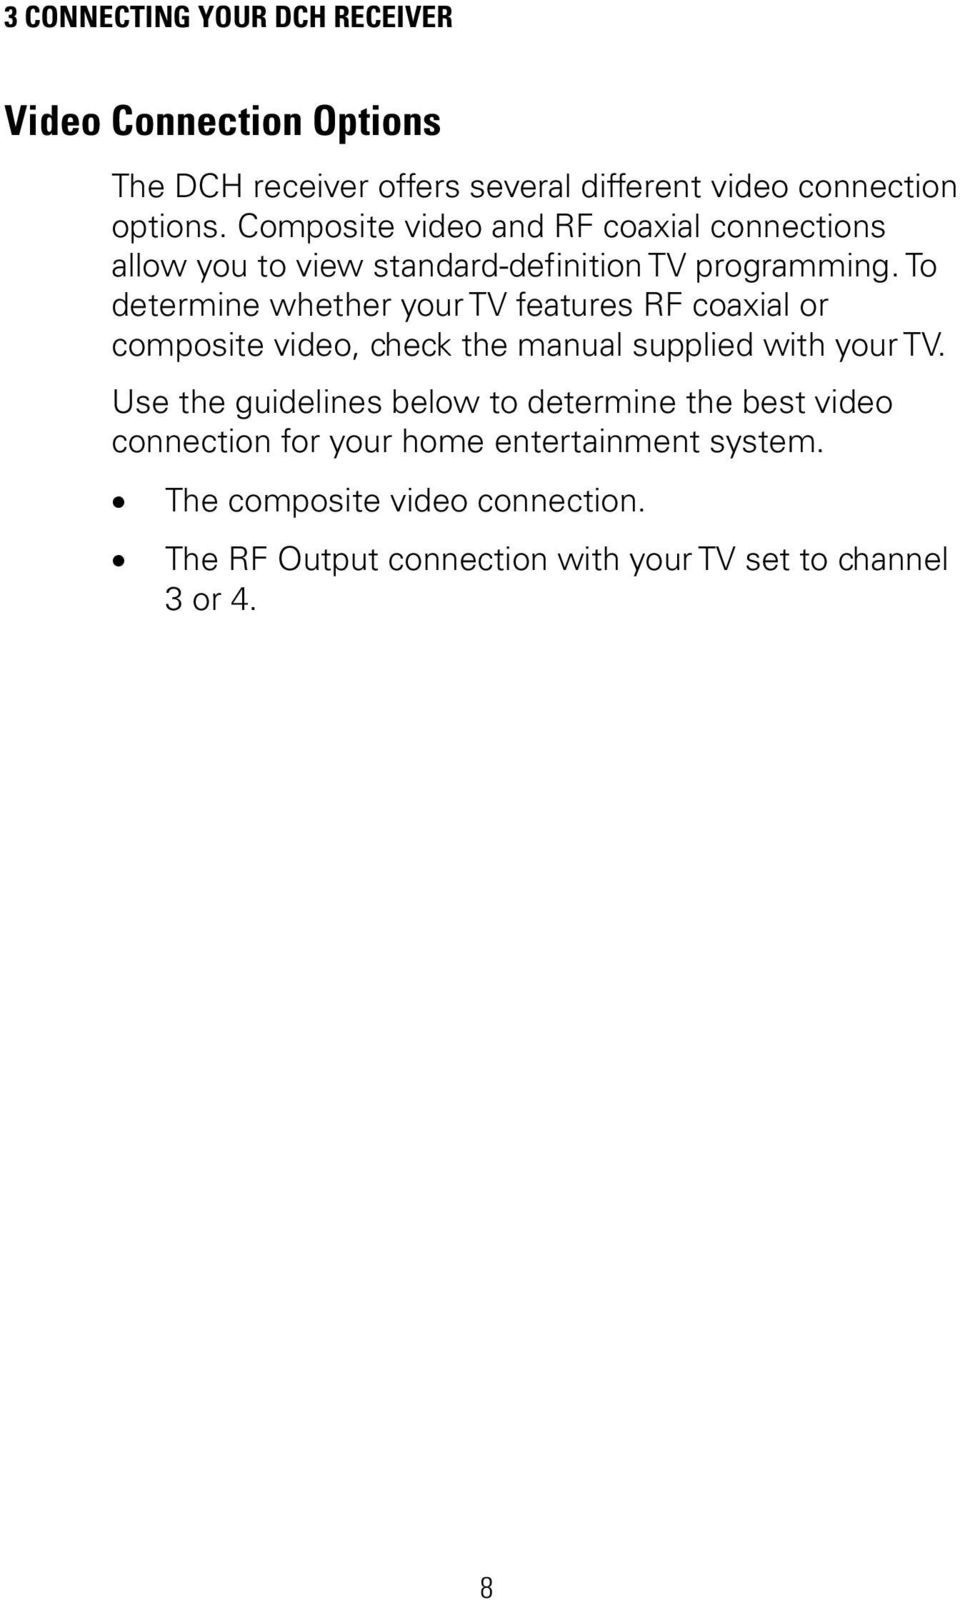 To determine whether your TV features RF coaxial or composite video, check the manual supplied with your TV.